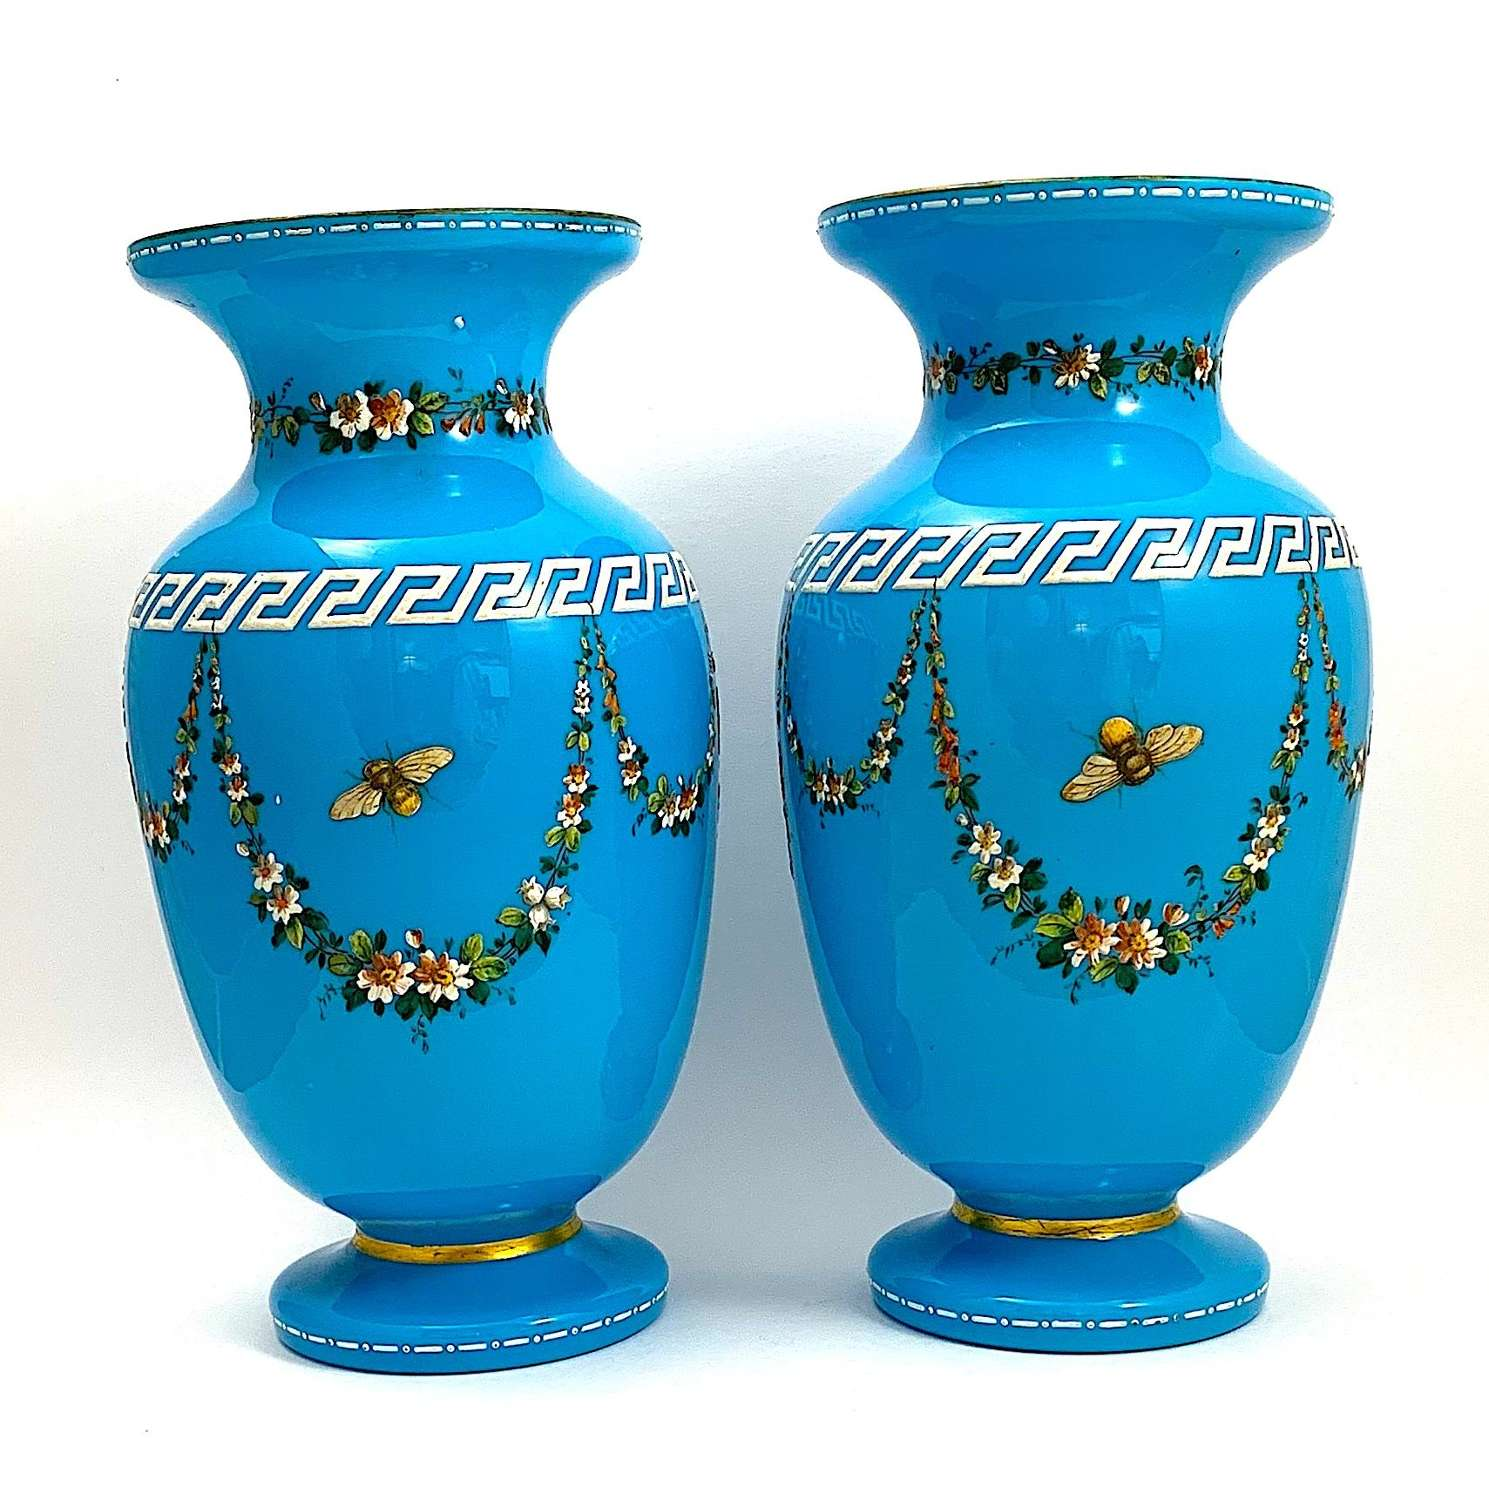 Pair of Antique Moser Blue Opaline Vases with Butterflies and Flowers